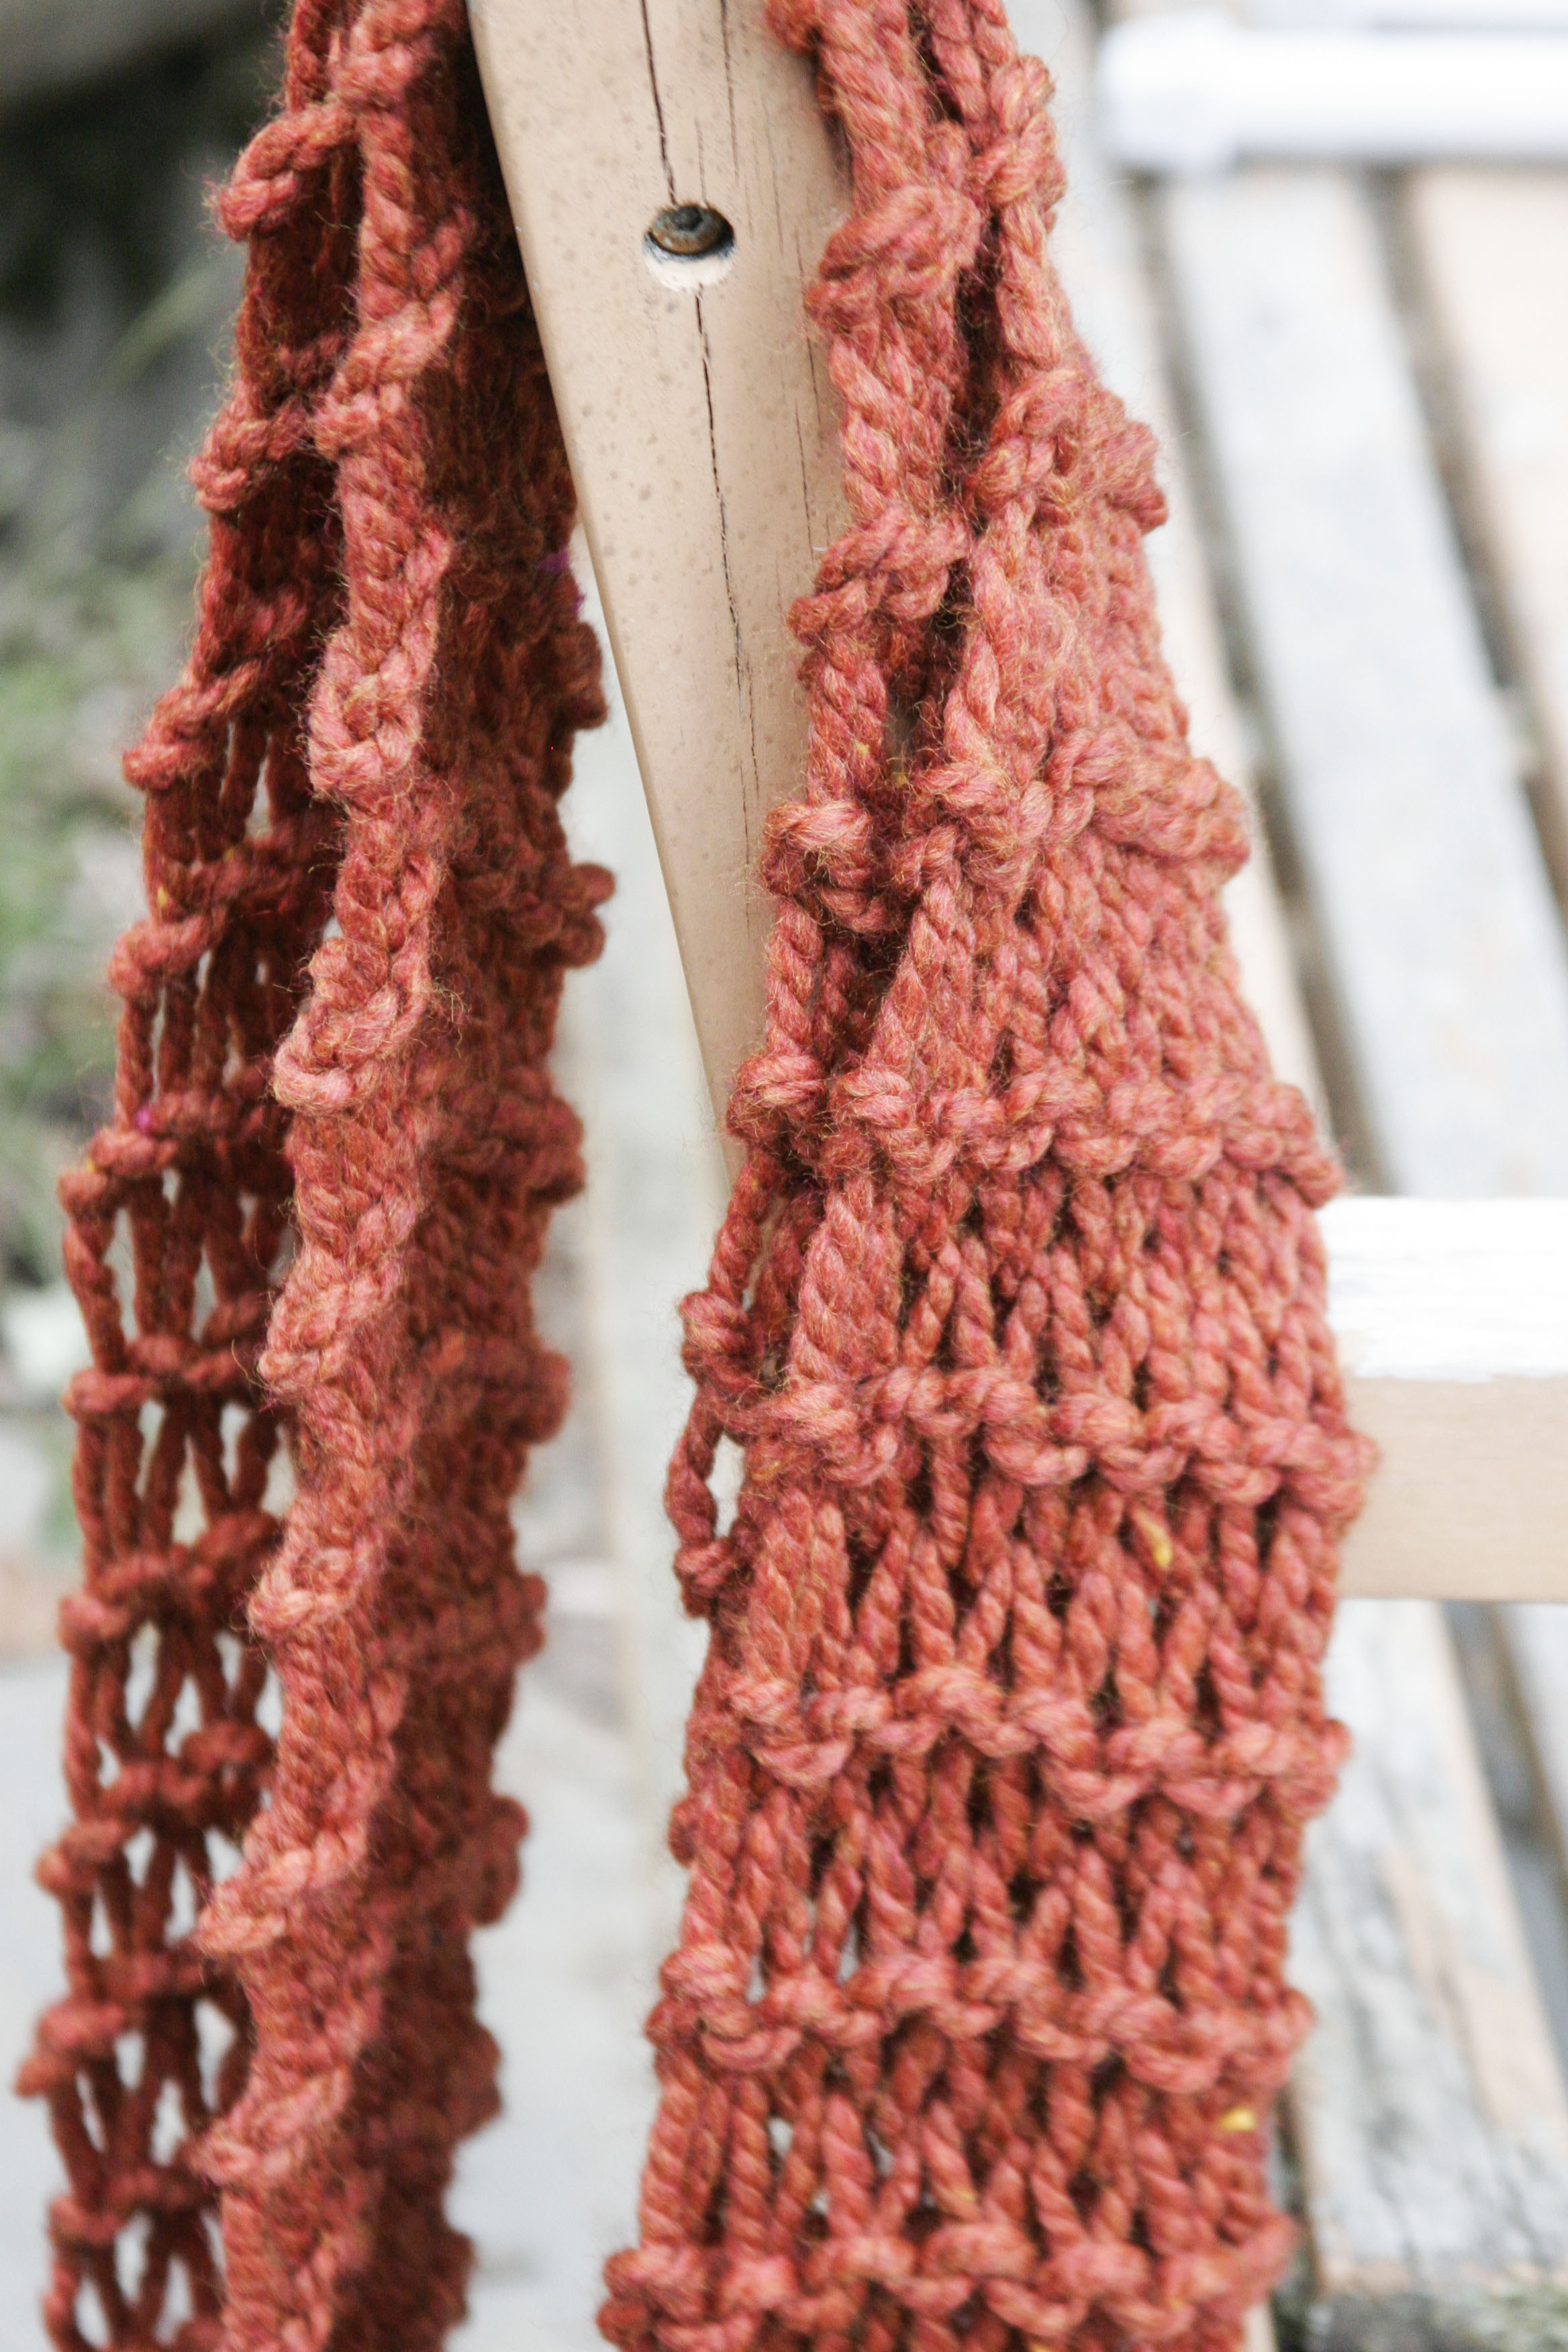 Learning (and relearning) to Knit